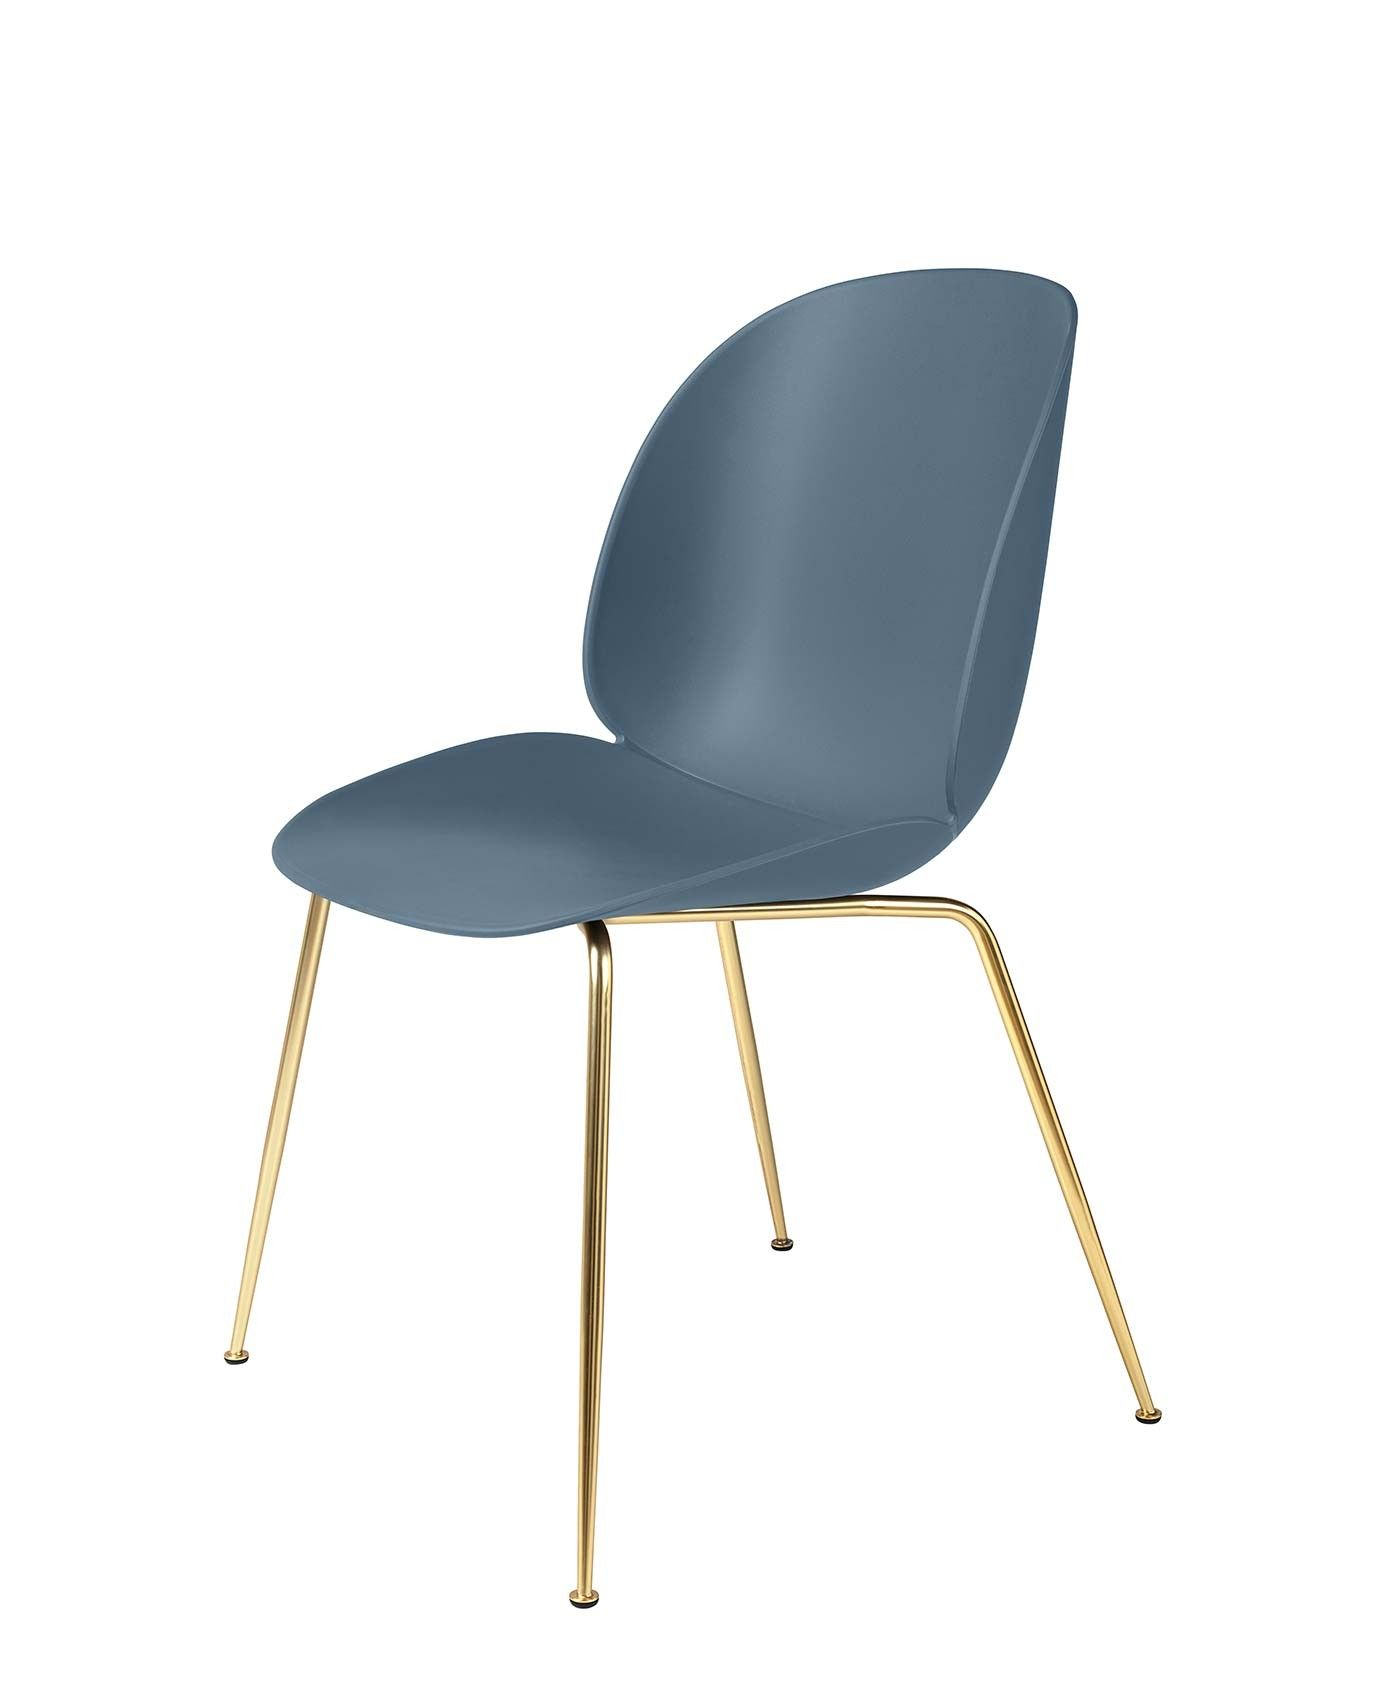 Top 10 More With Less Pinterest Pins In 2020 Wood Chair Design